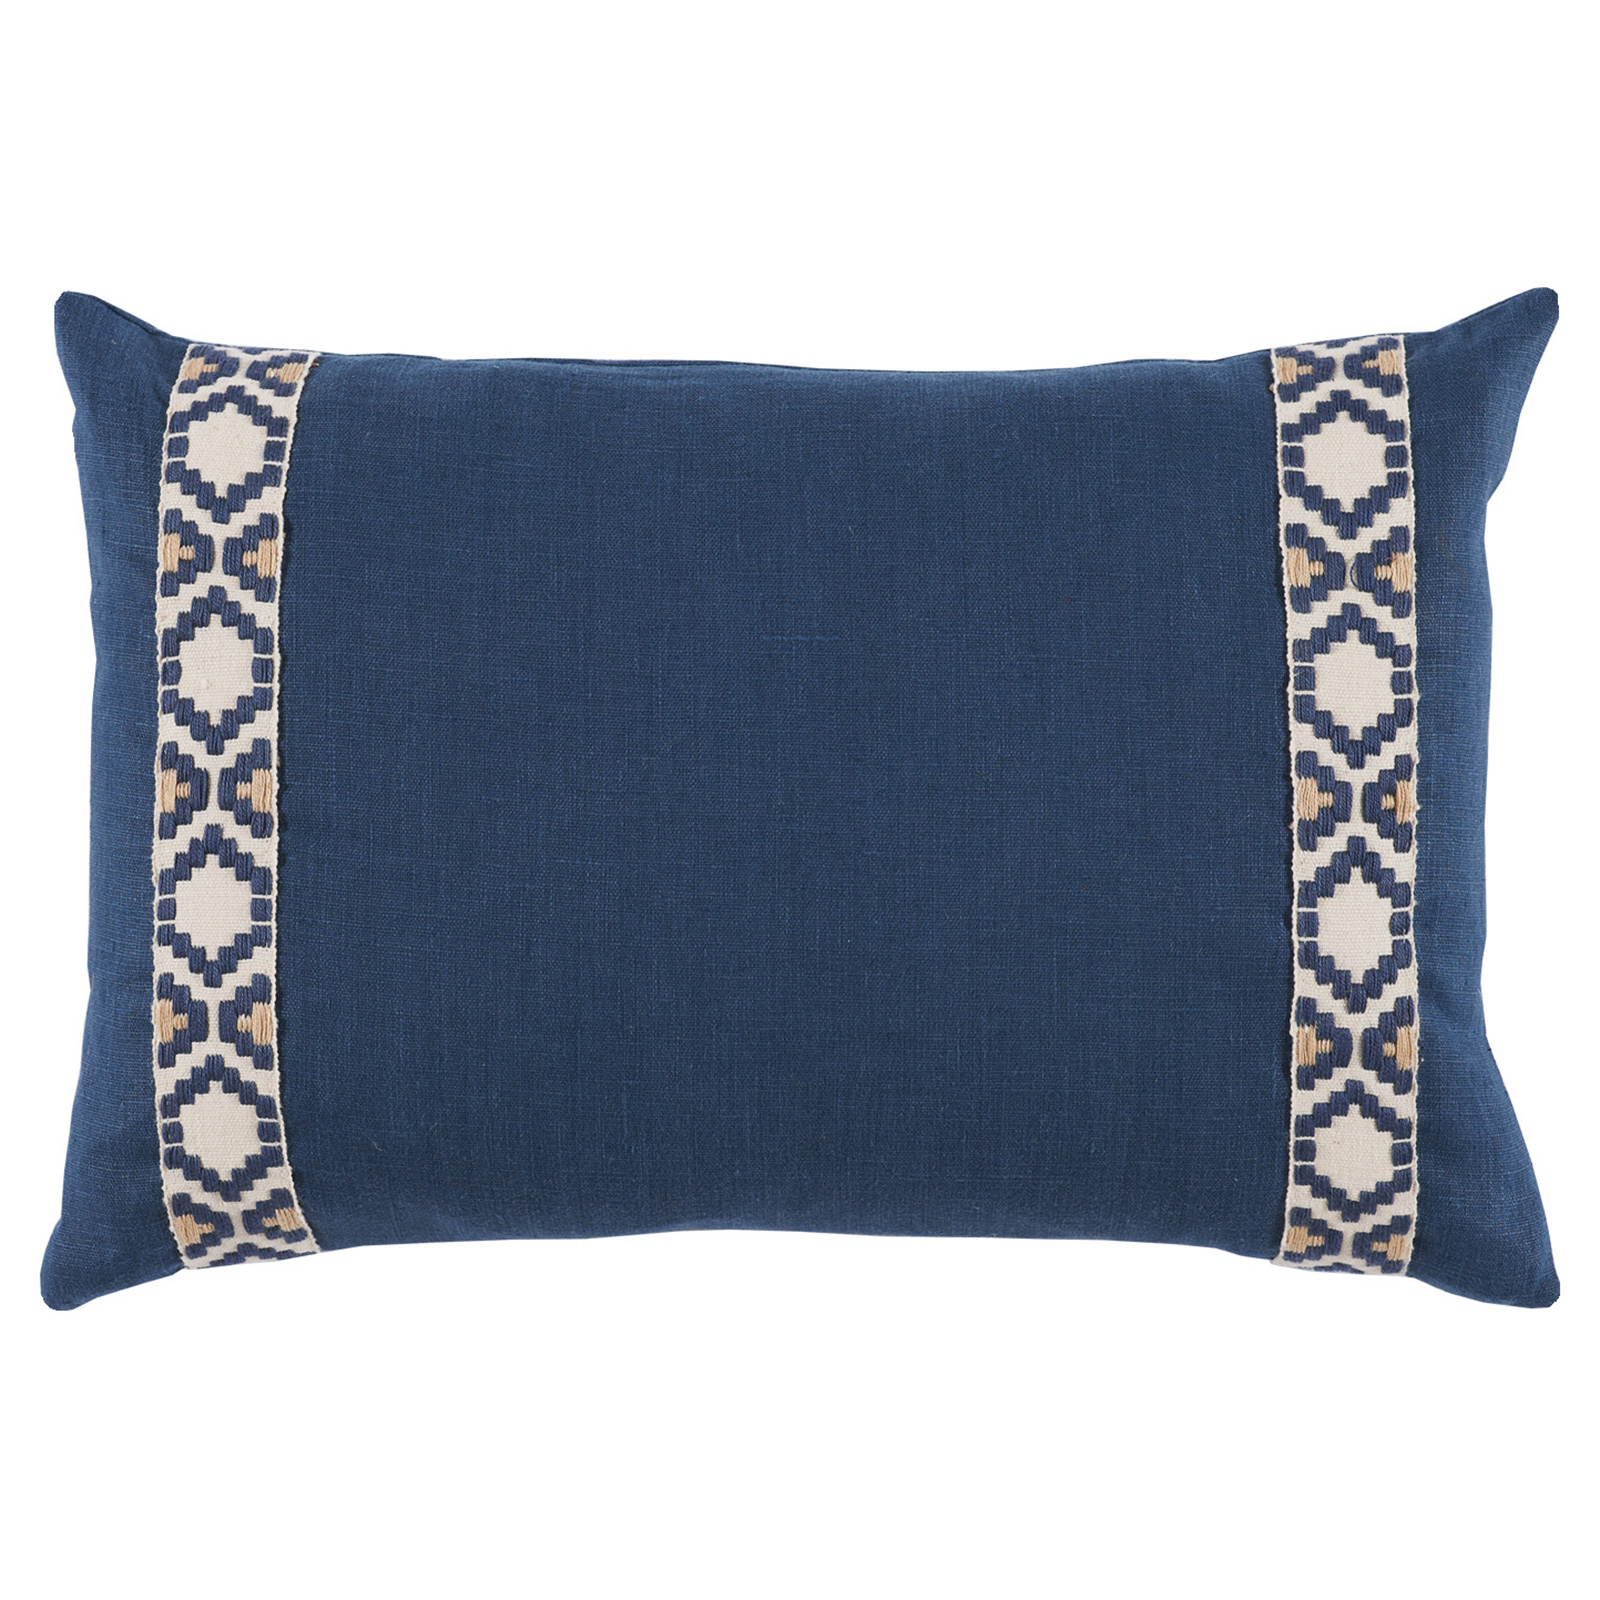 Kaia Global Navy Linen Trim Band Pillow - 13x19